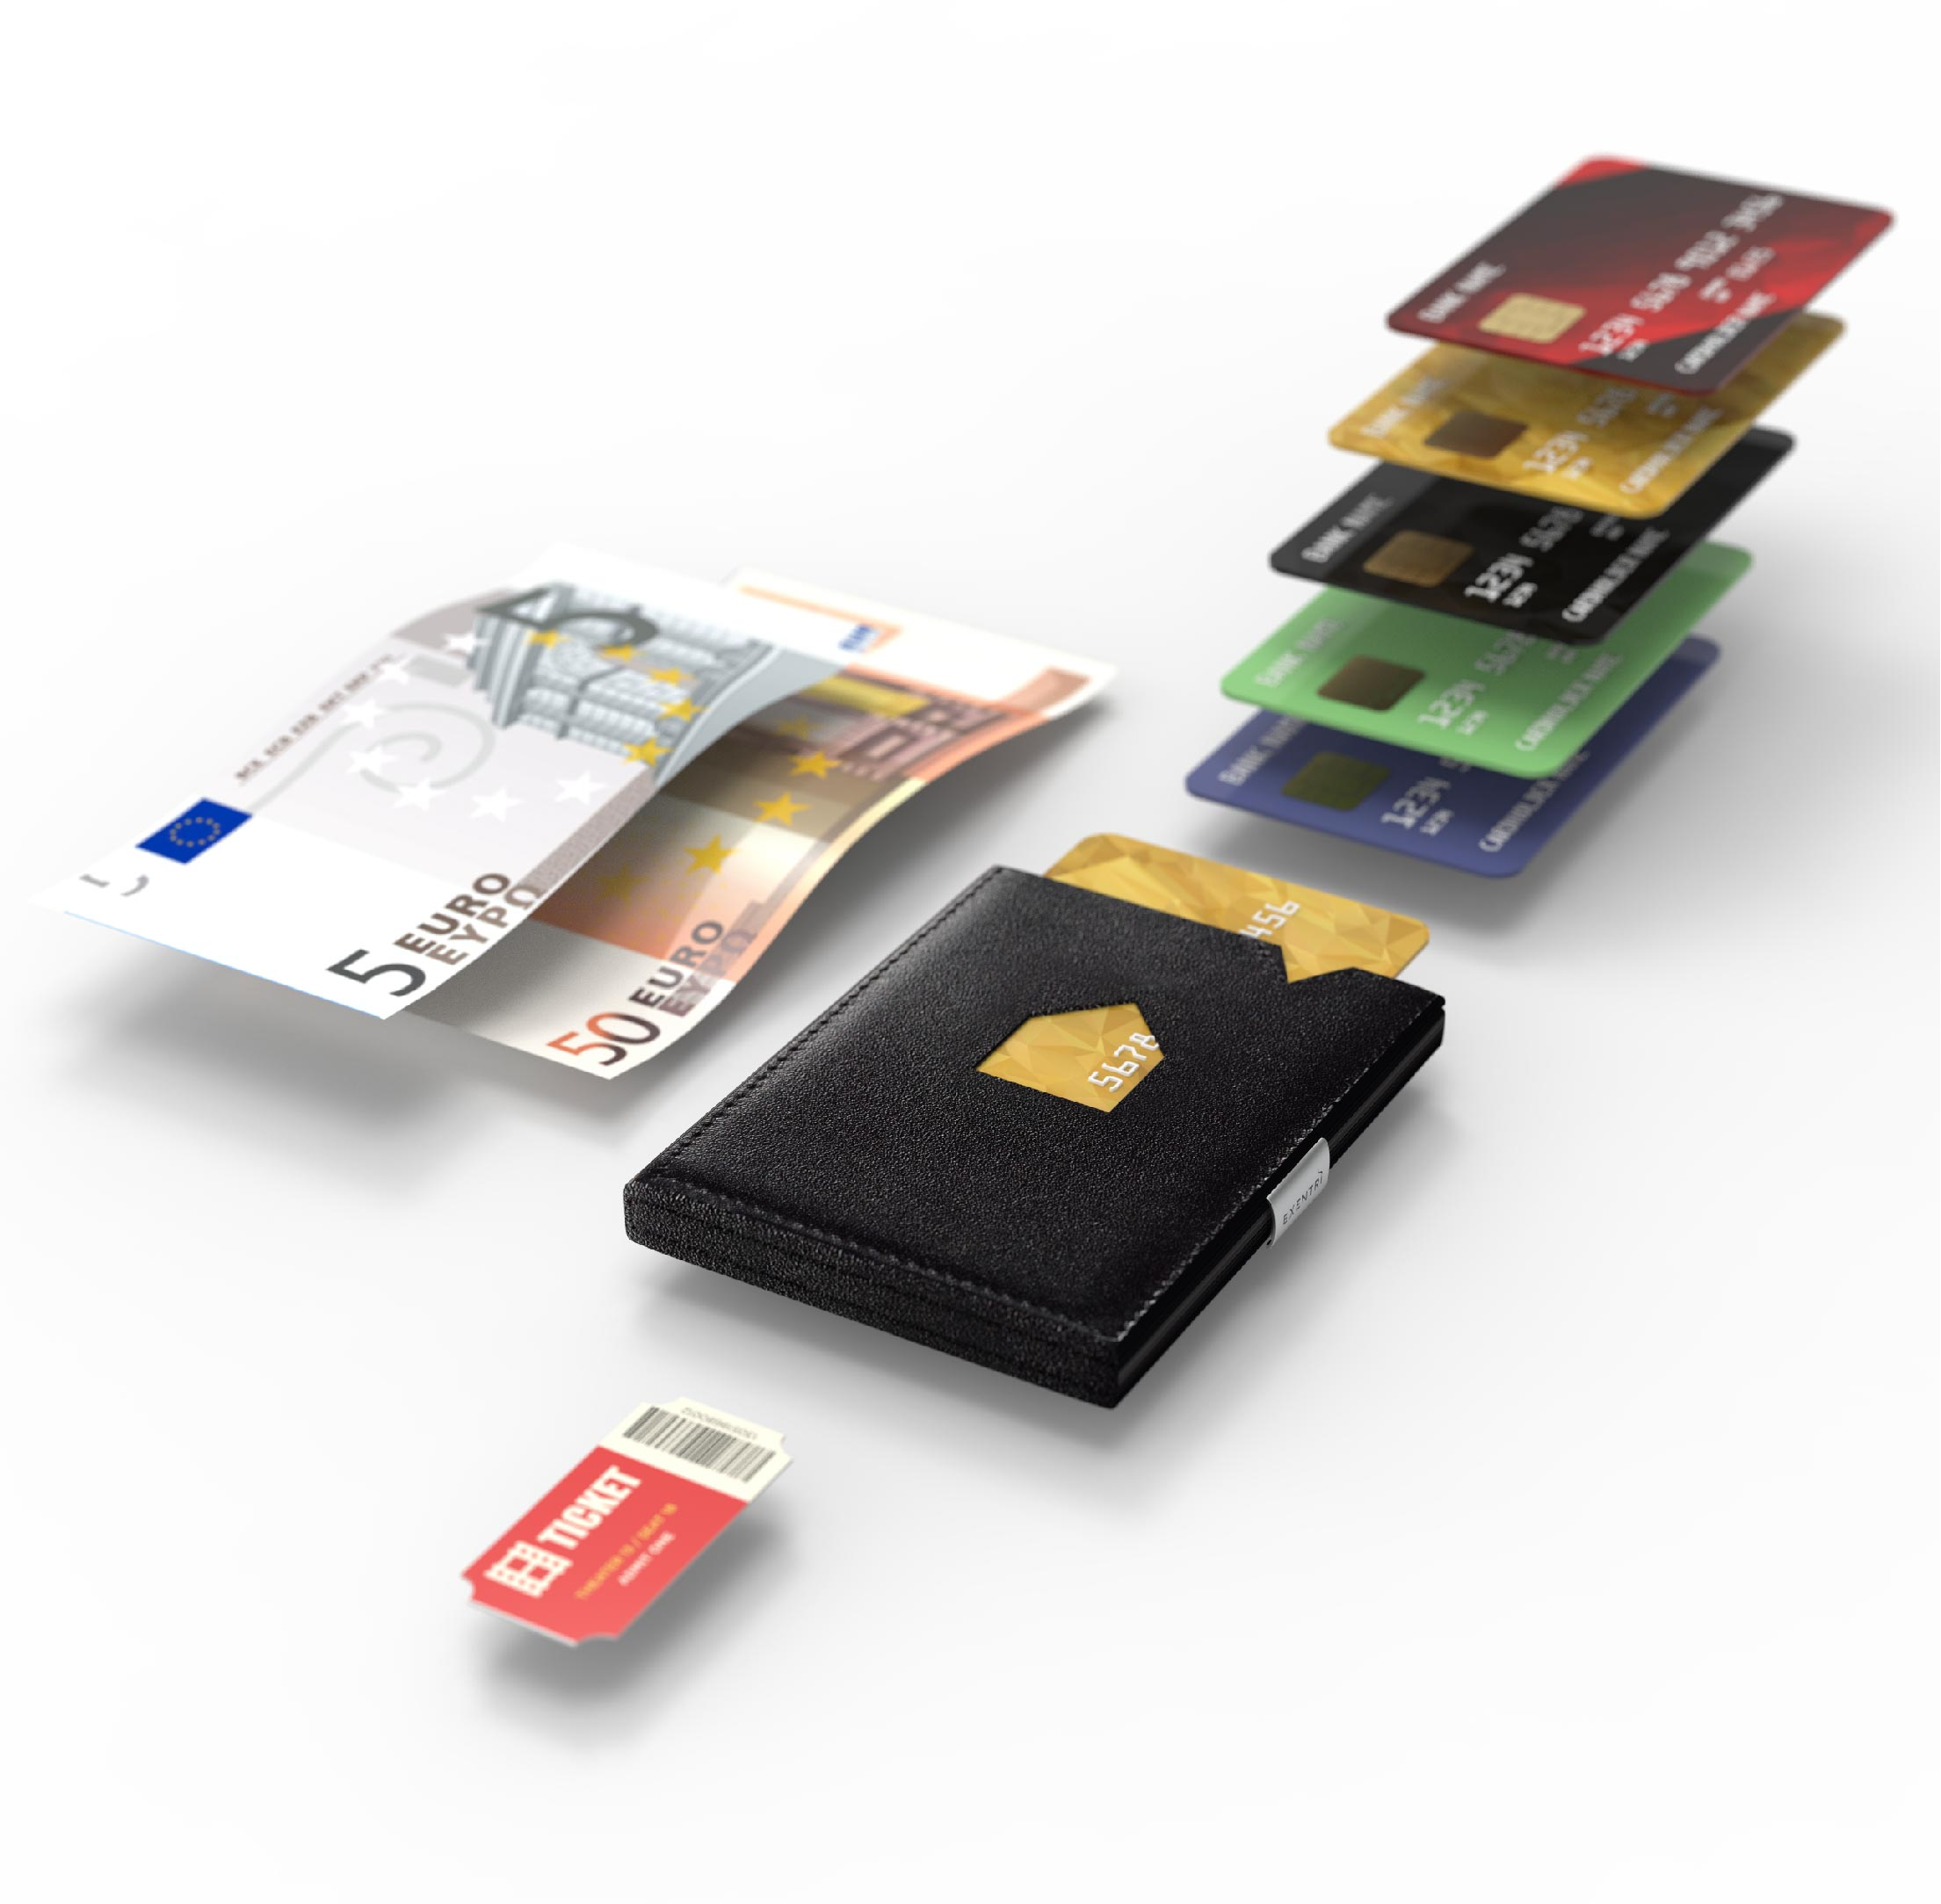 wallet product specifications